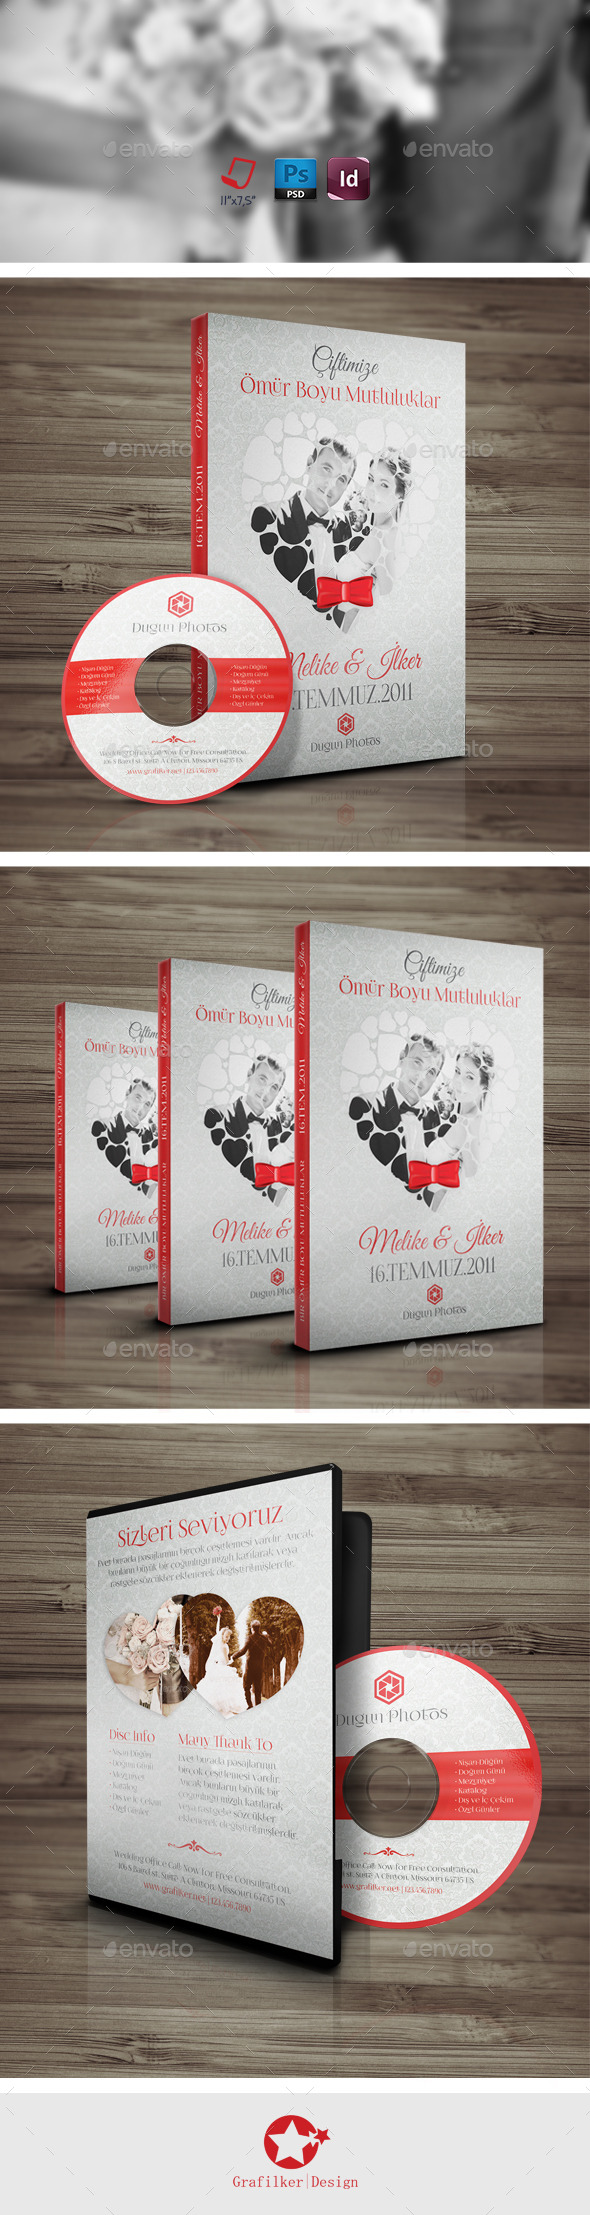 Wedding Dvd-Cd Cover Templates